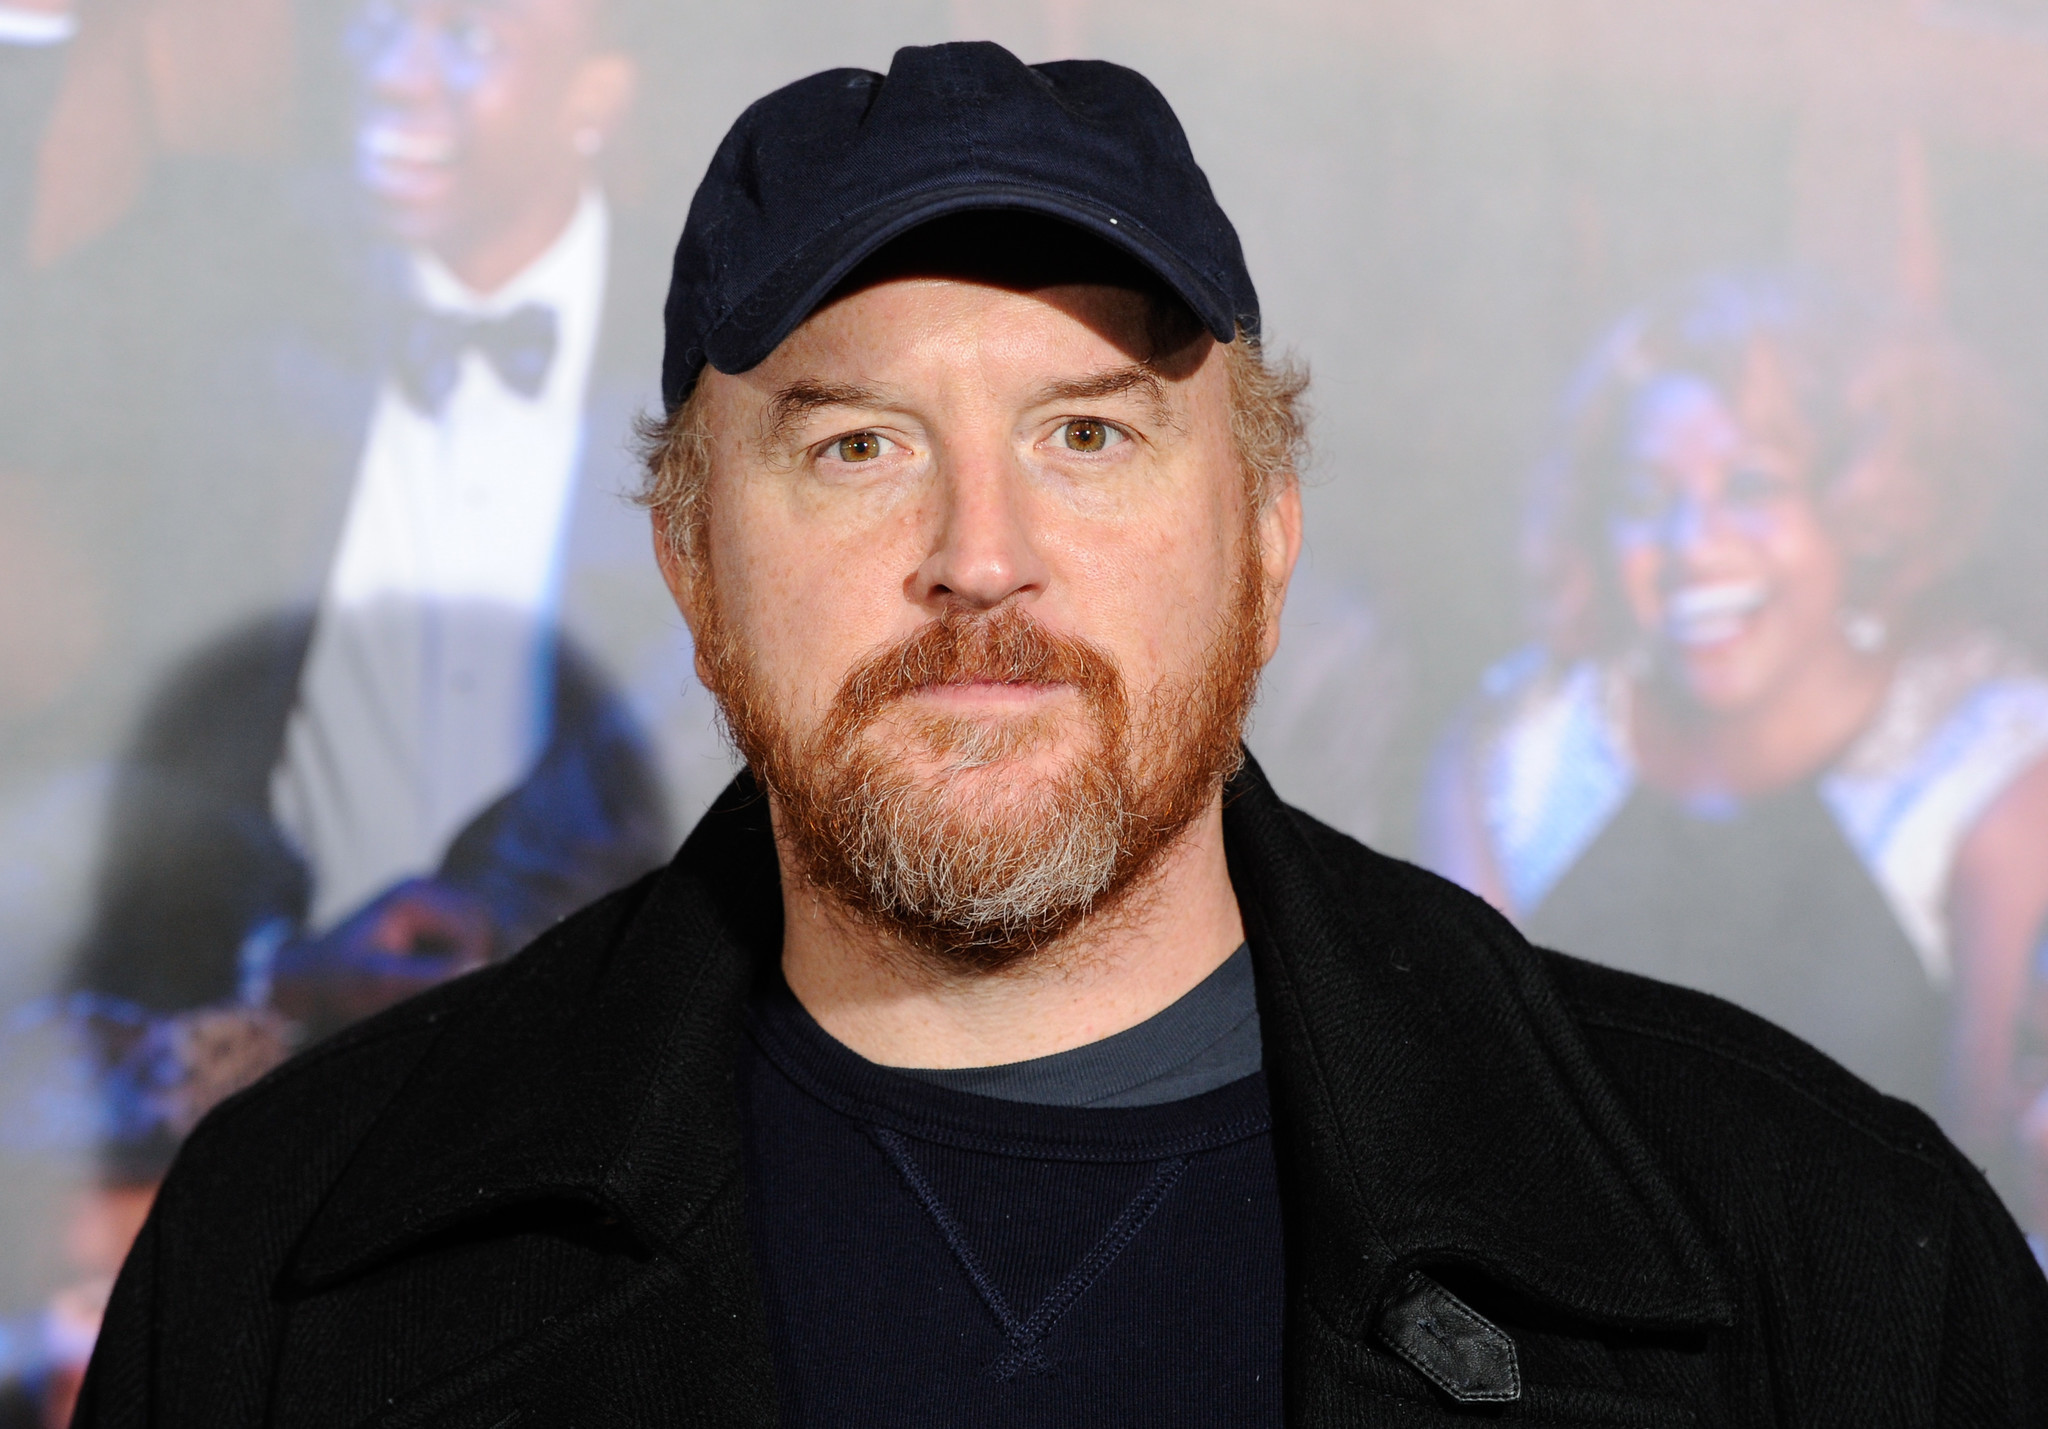 Louis C.K. drops into 'Slave Play' on Broadway, gets scolded by playwright Jeremy O. Harris